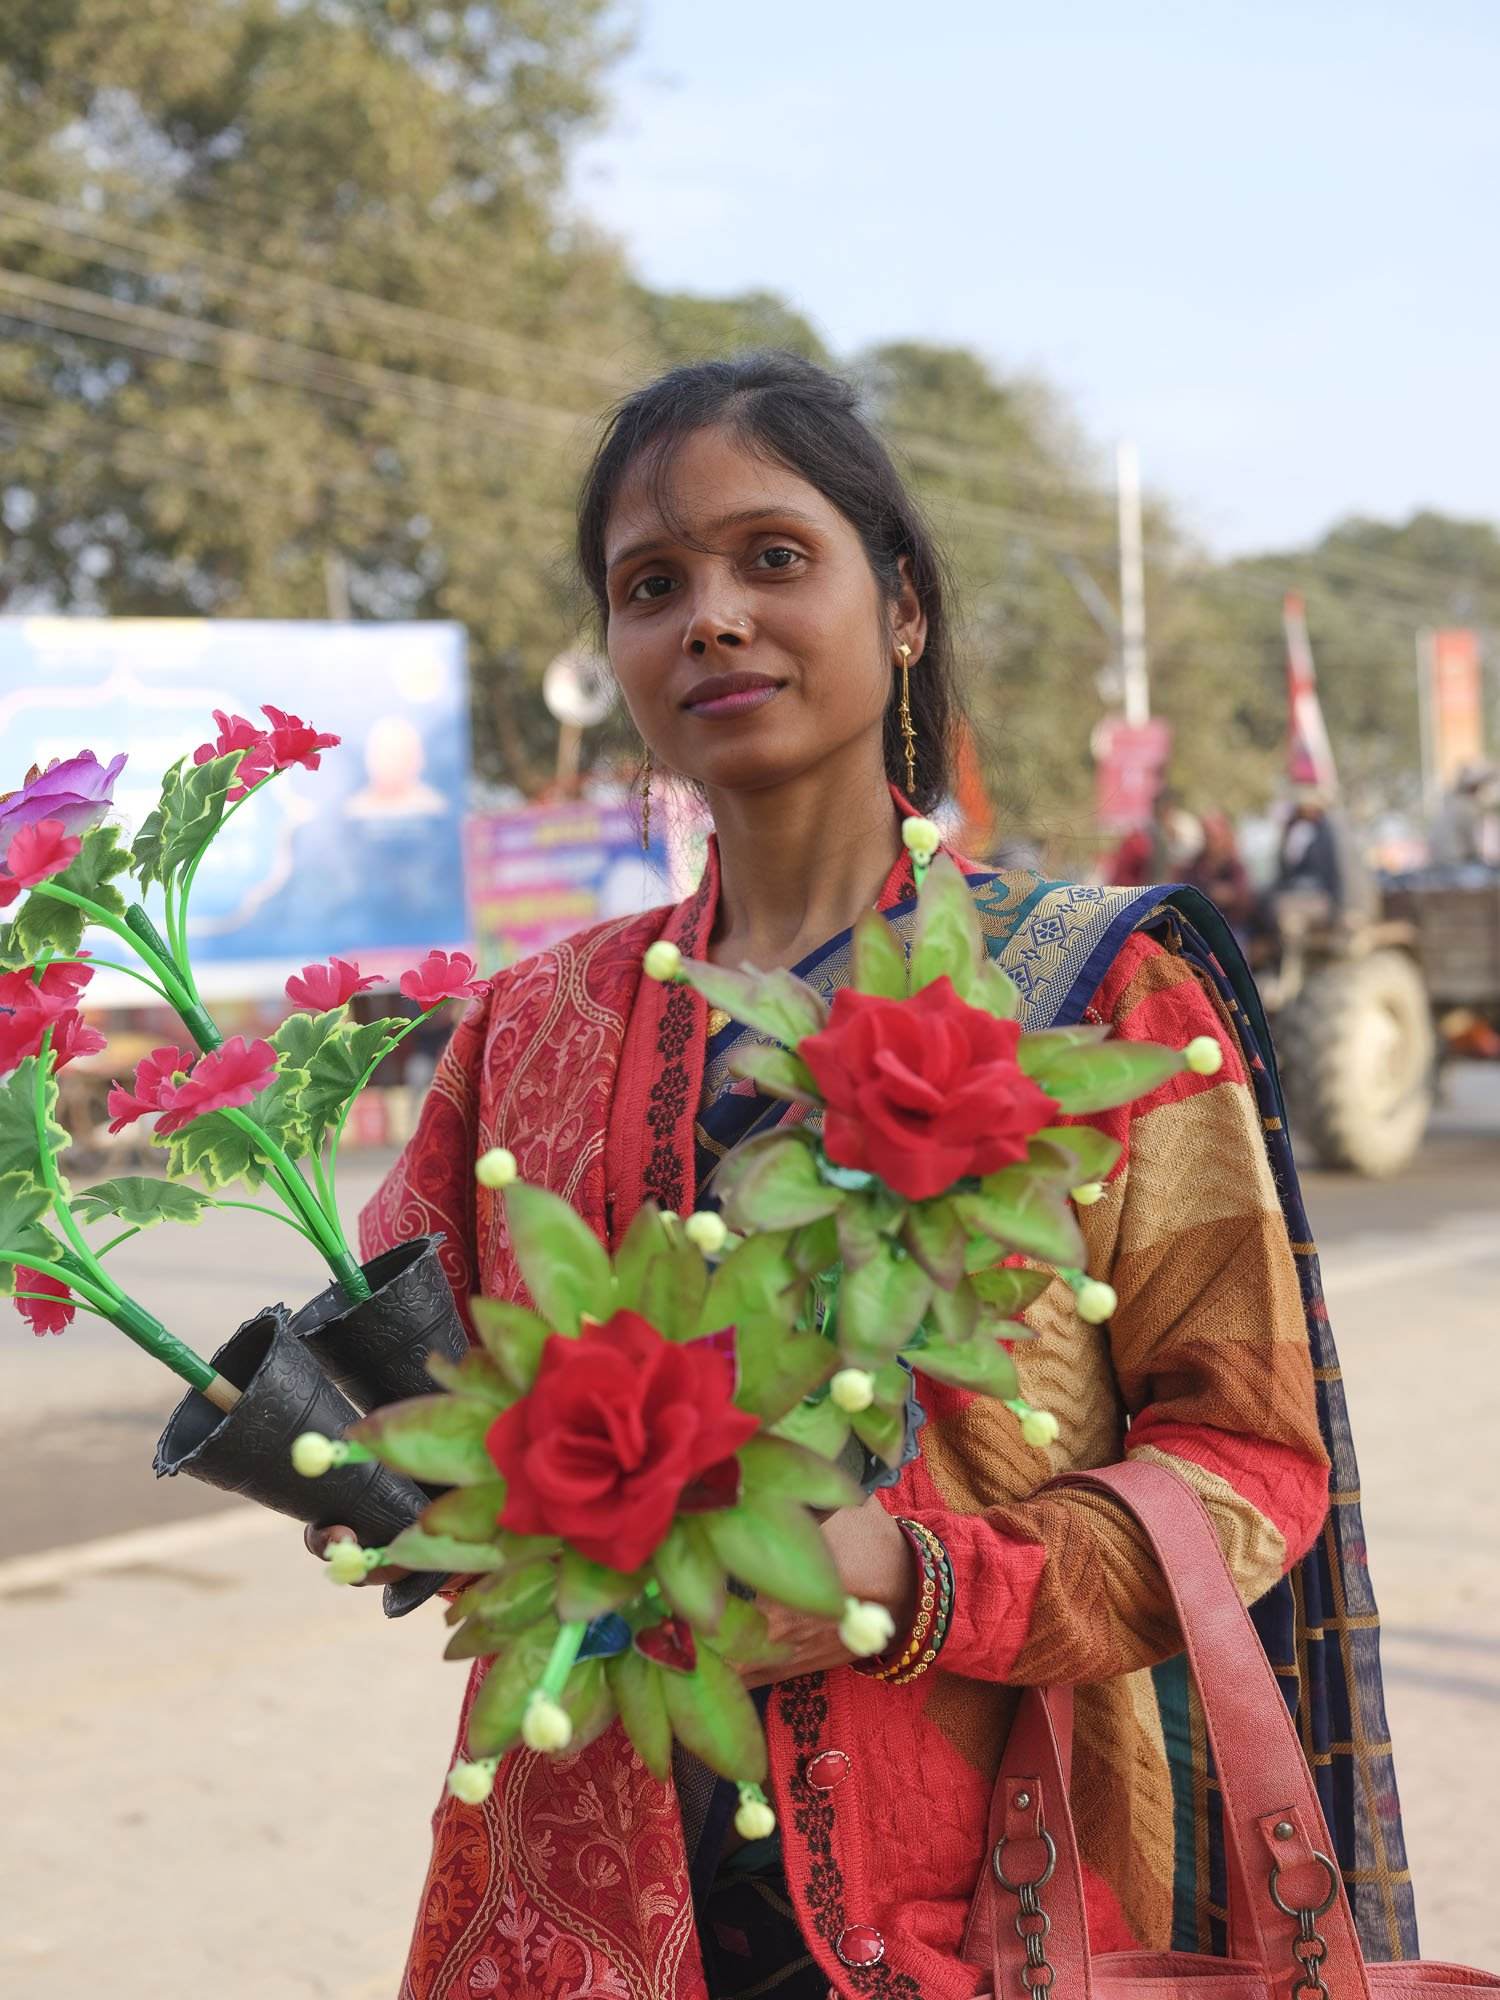 flower shop market pilgrims Kumbh mela 2019 India Allahabad Prayagraj Ardh hindu religious Festival event rivers photographer jose jeuland photography